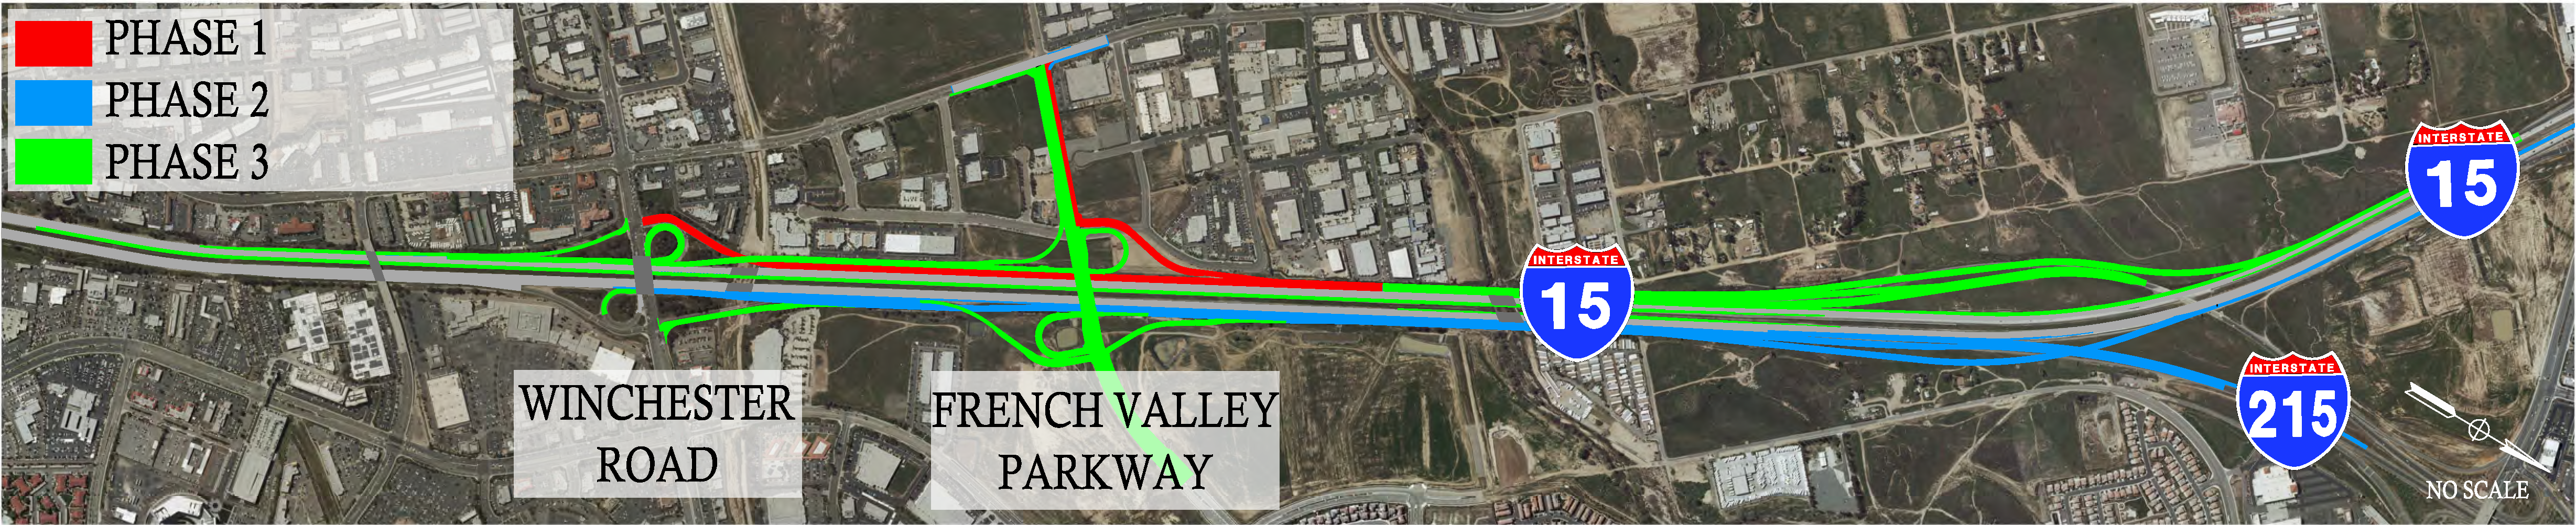 Map of French Valley Parkway Interchange